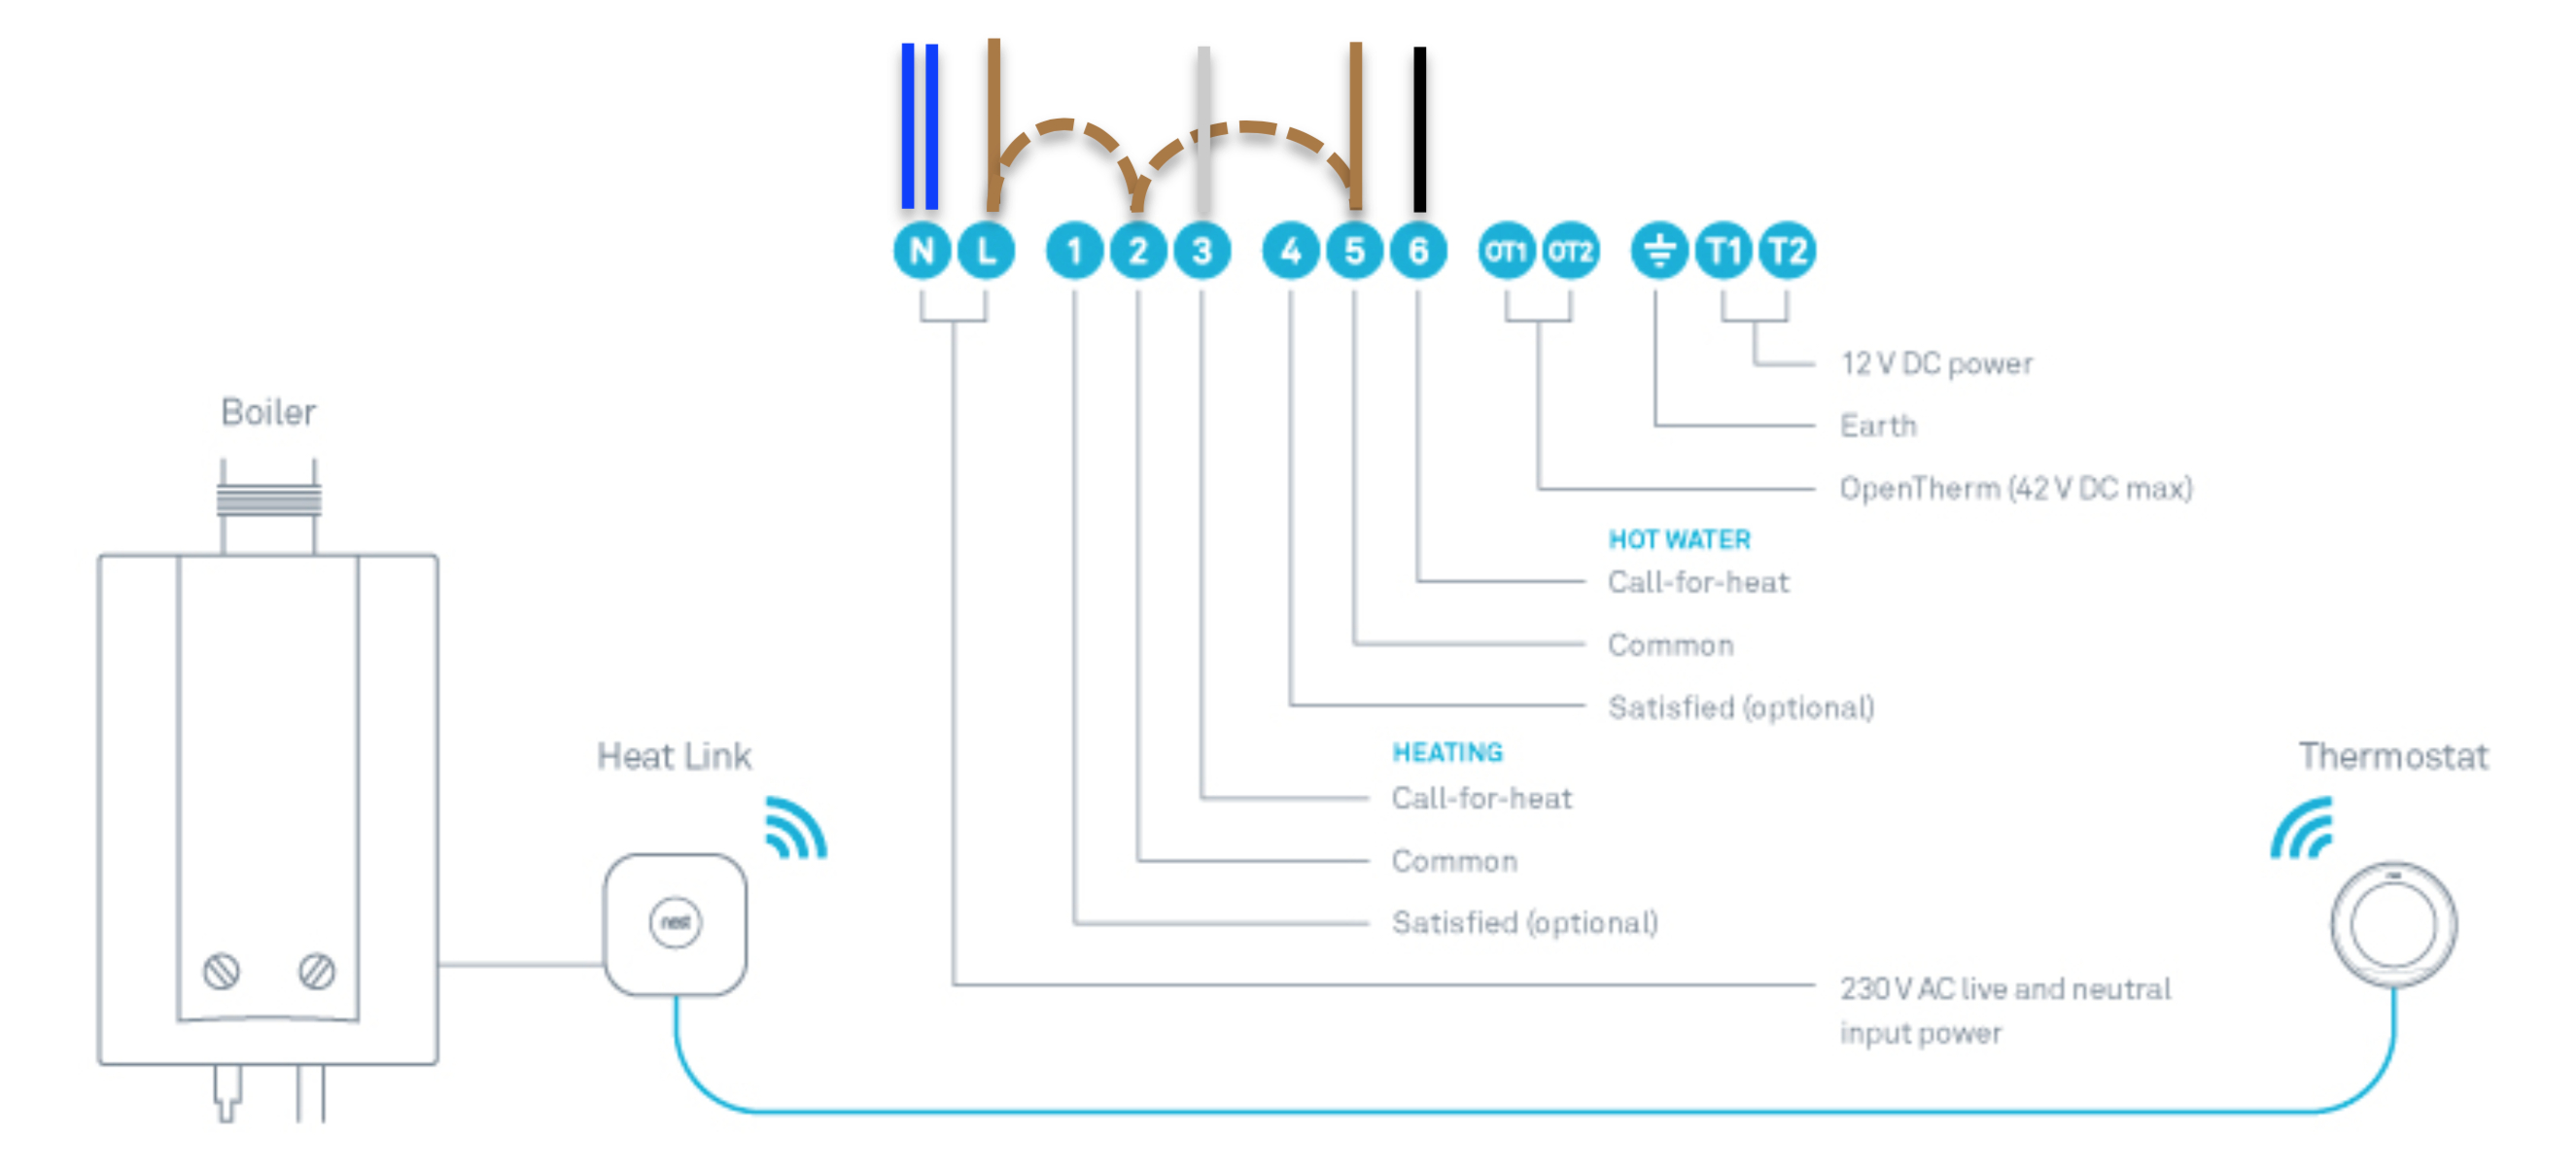 Room Stat Wiring Diagram | Wiring Diagram - Get Nest Wiring Diagram